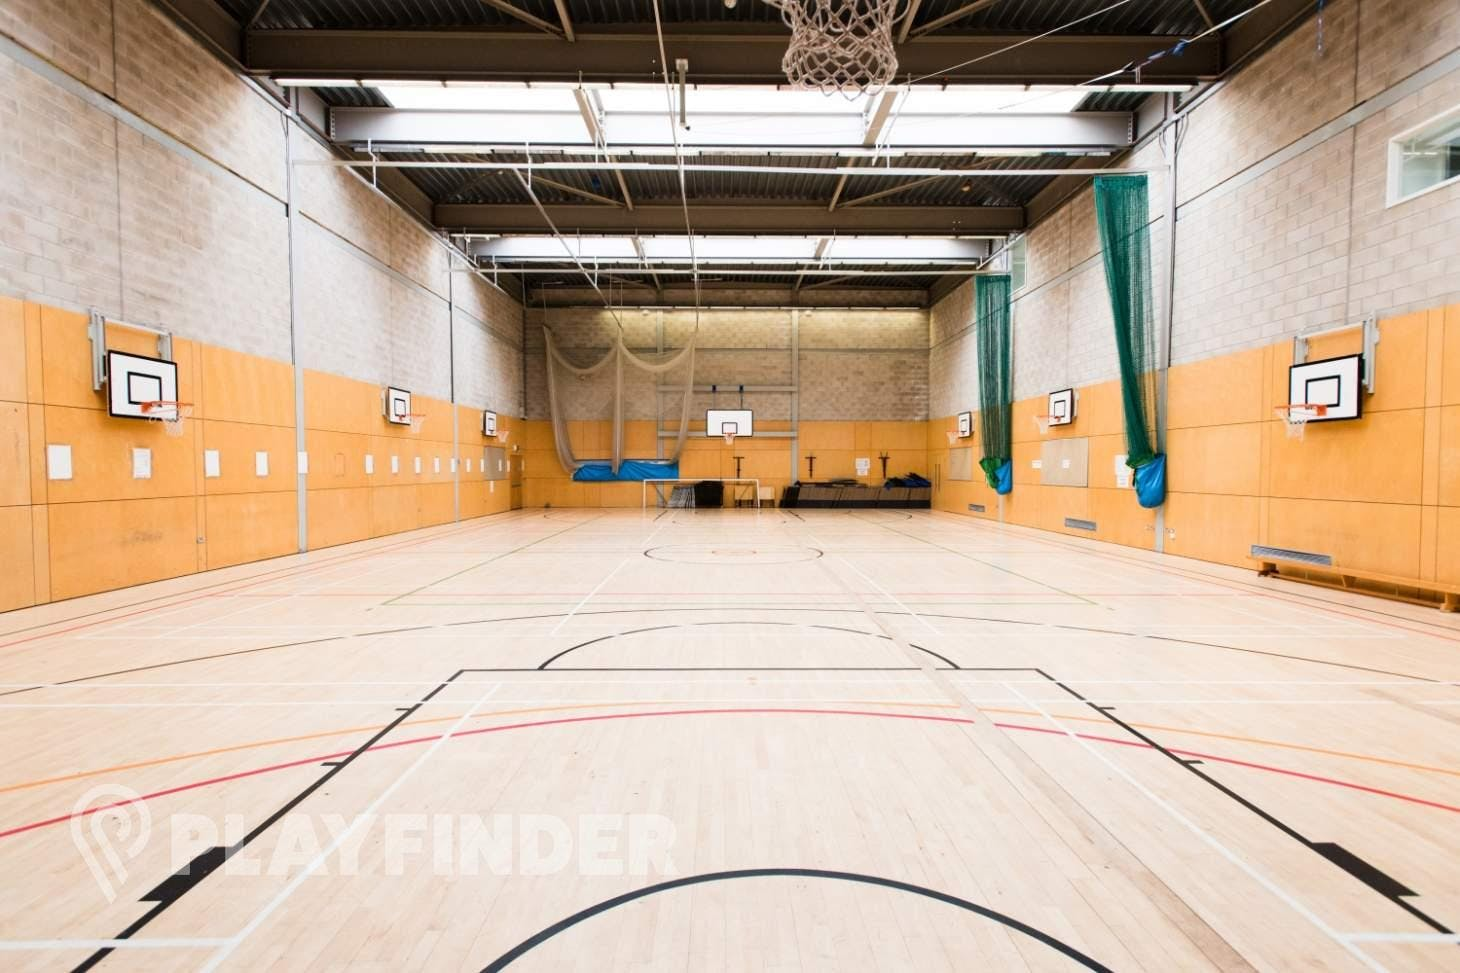 Haverstock School Indoor basketball court